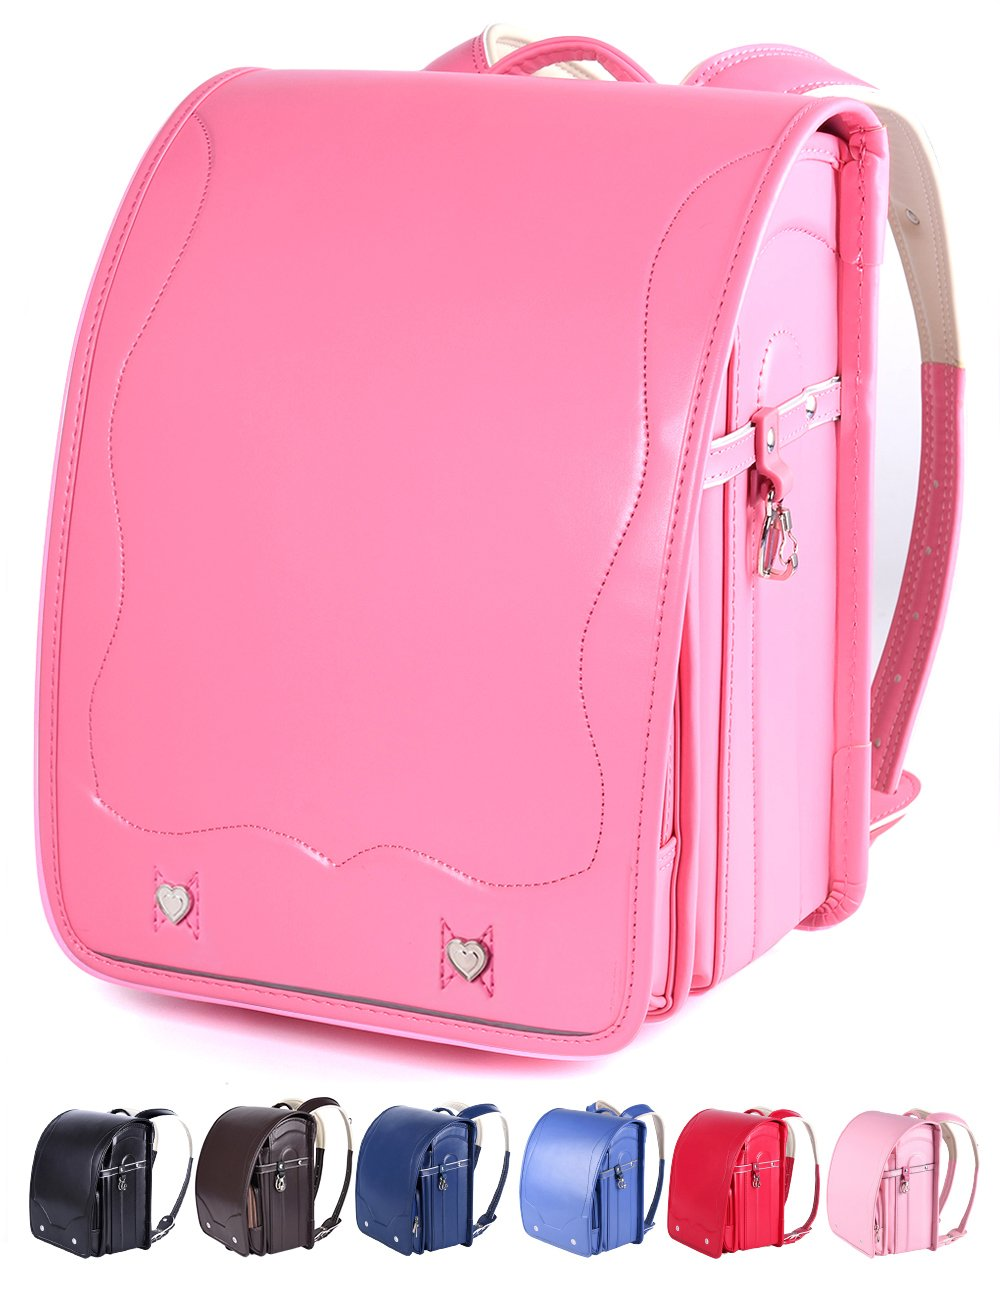 Randoseru Children Japanese School Bag for Boys and Girls,Satchel Bag A4 Clear File 7 Colors (CHERRY RED) by M-MAX